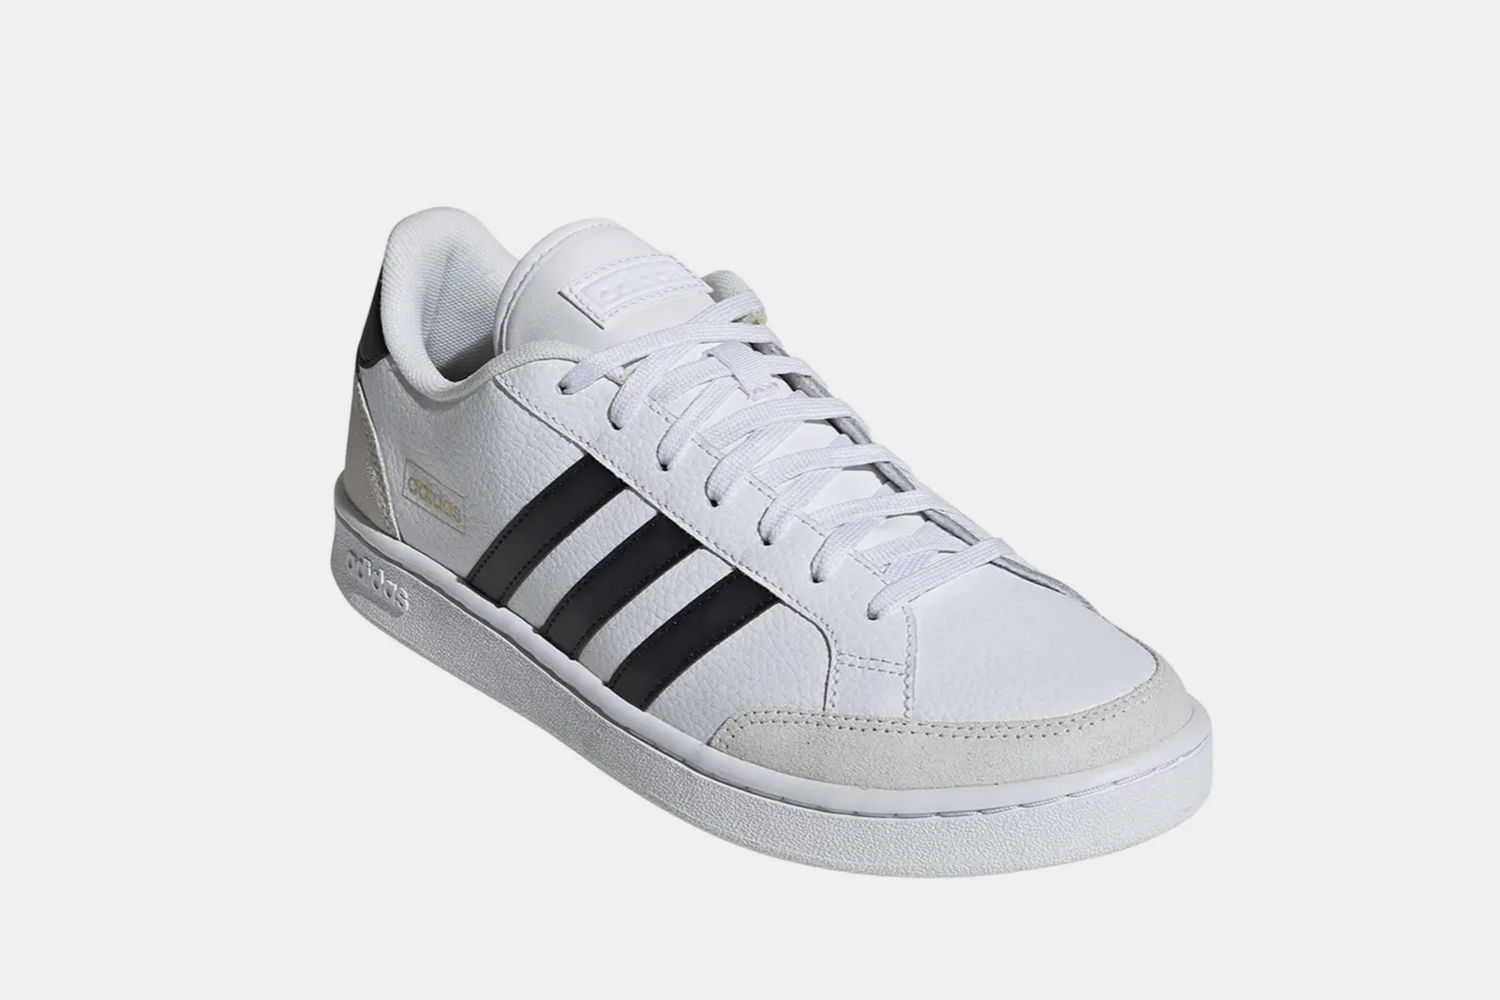 Adidas Grand Court SE Leather Sneaker